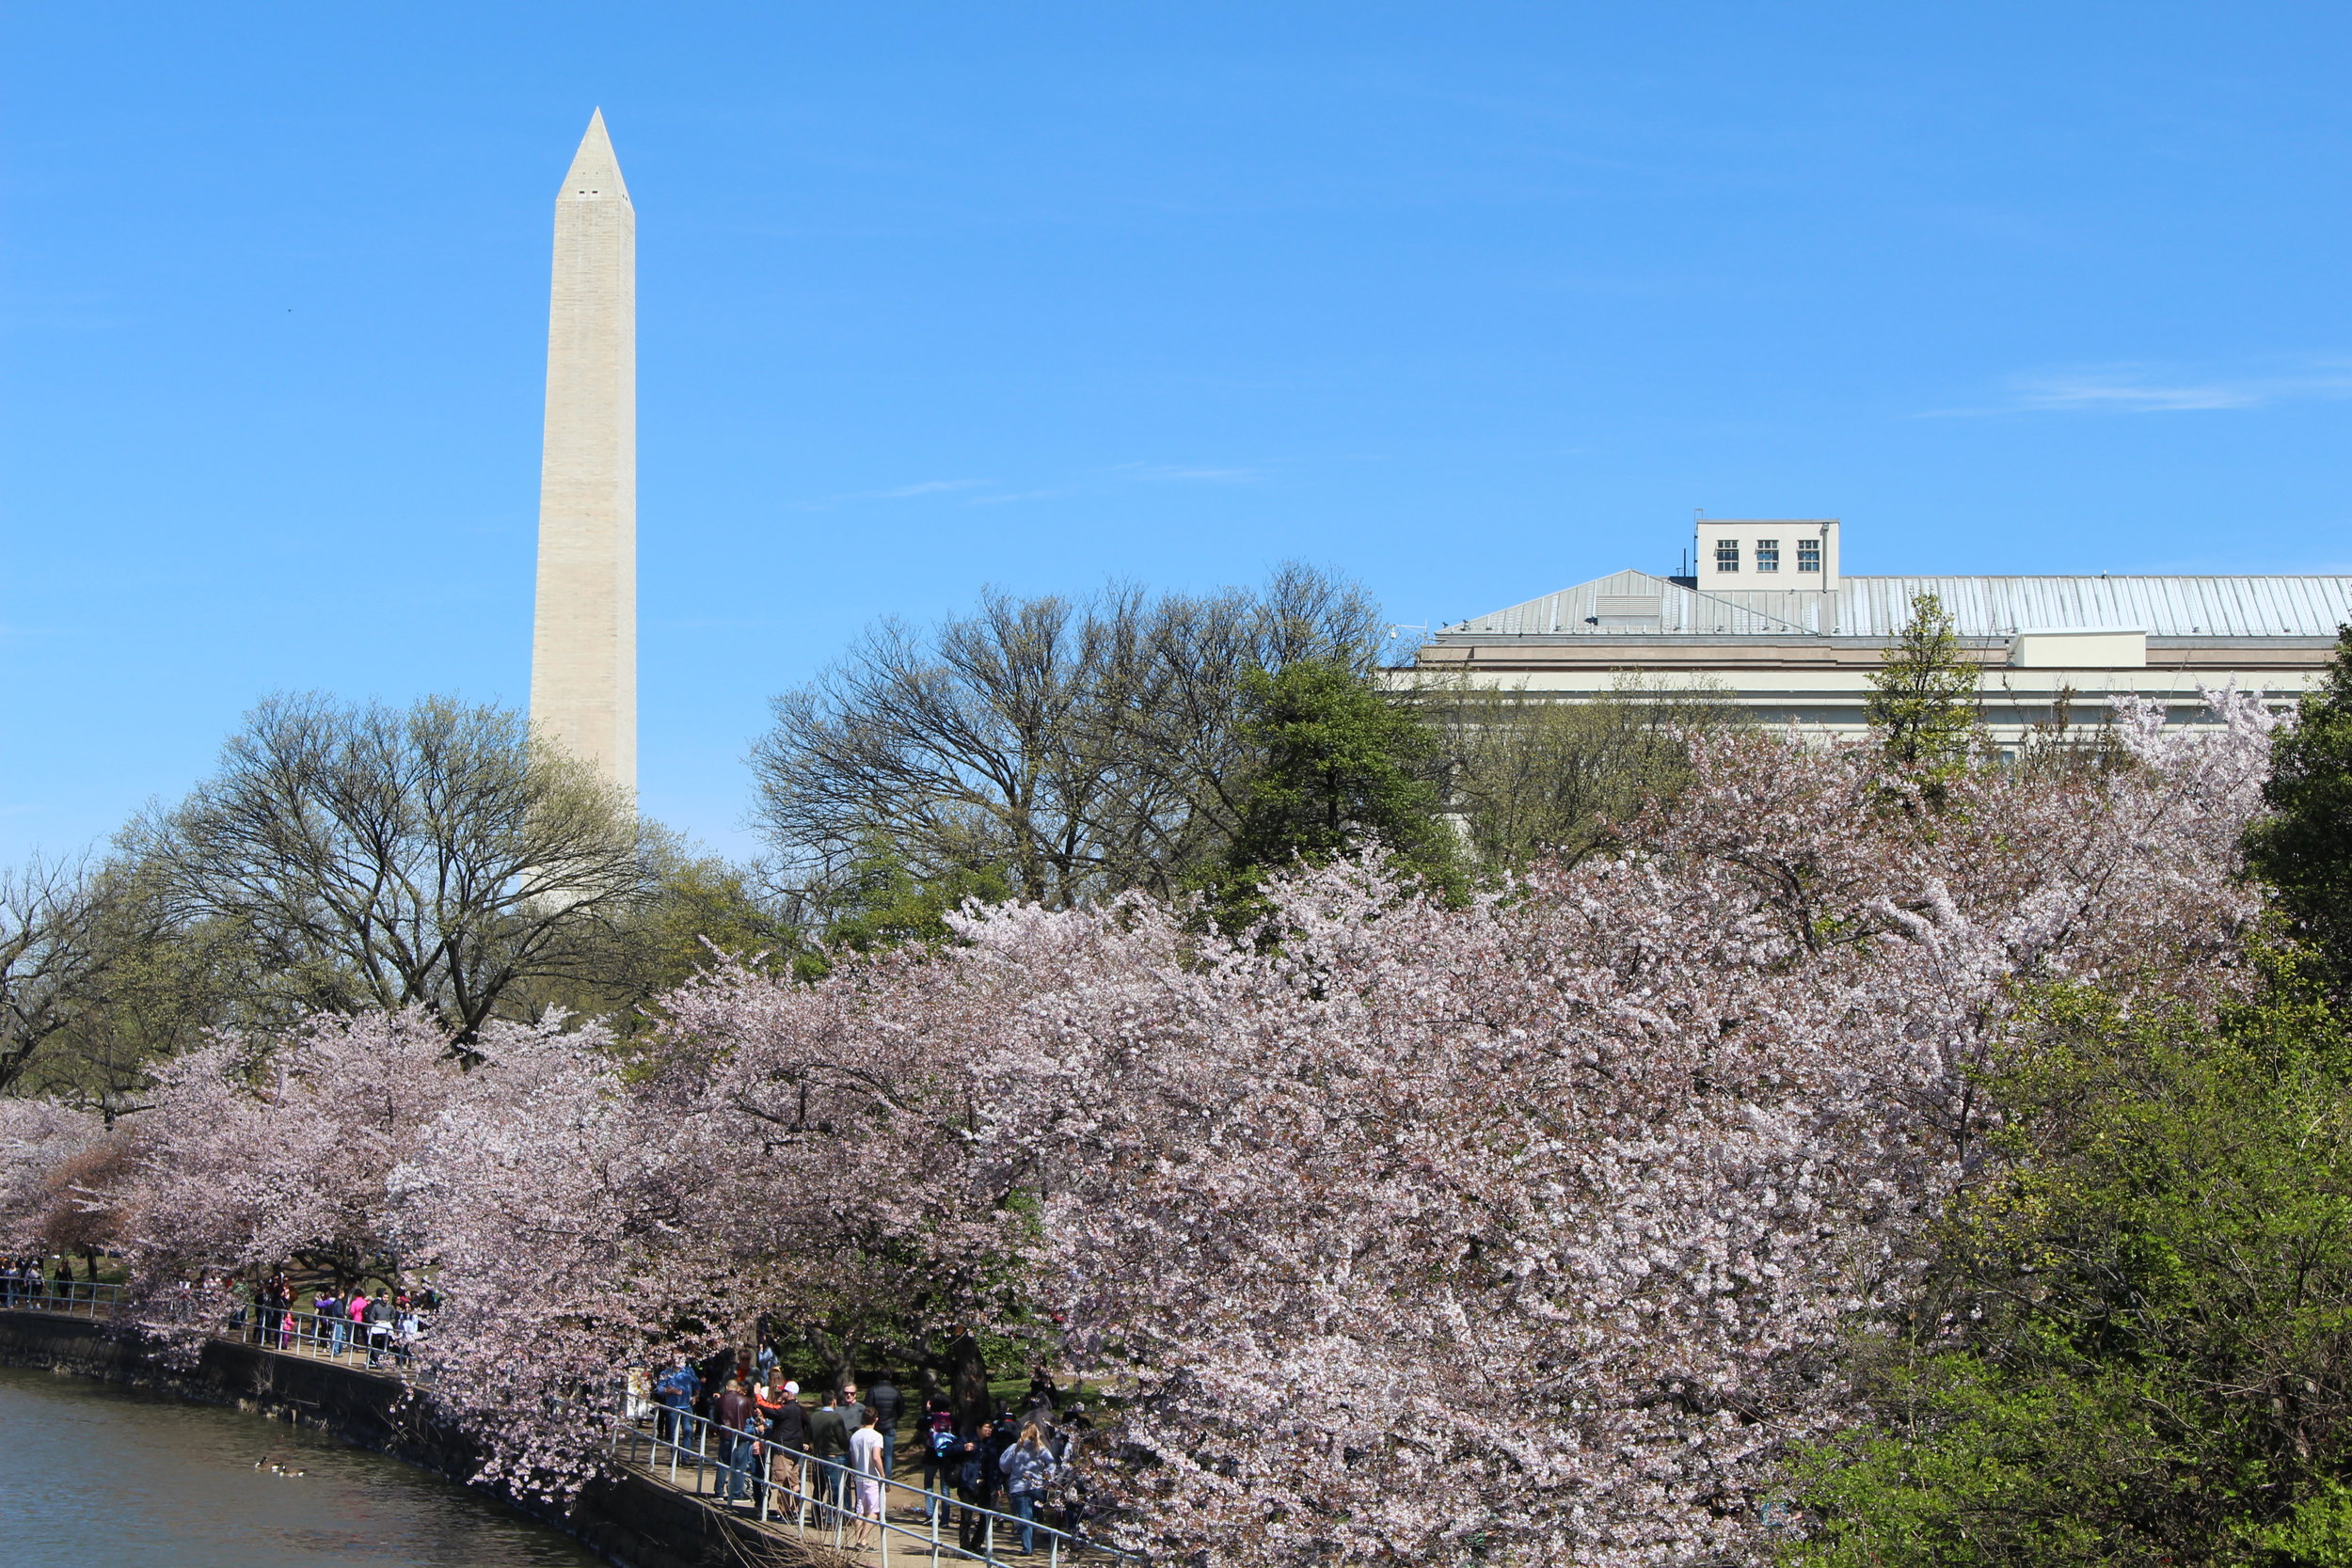 Cherry Blossoms and the Washington Monument